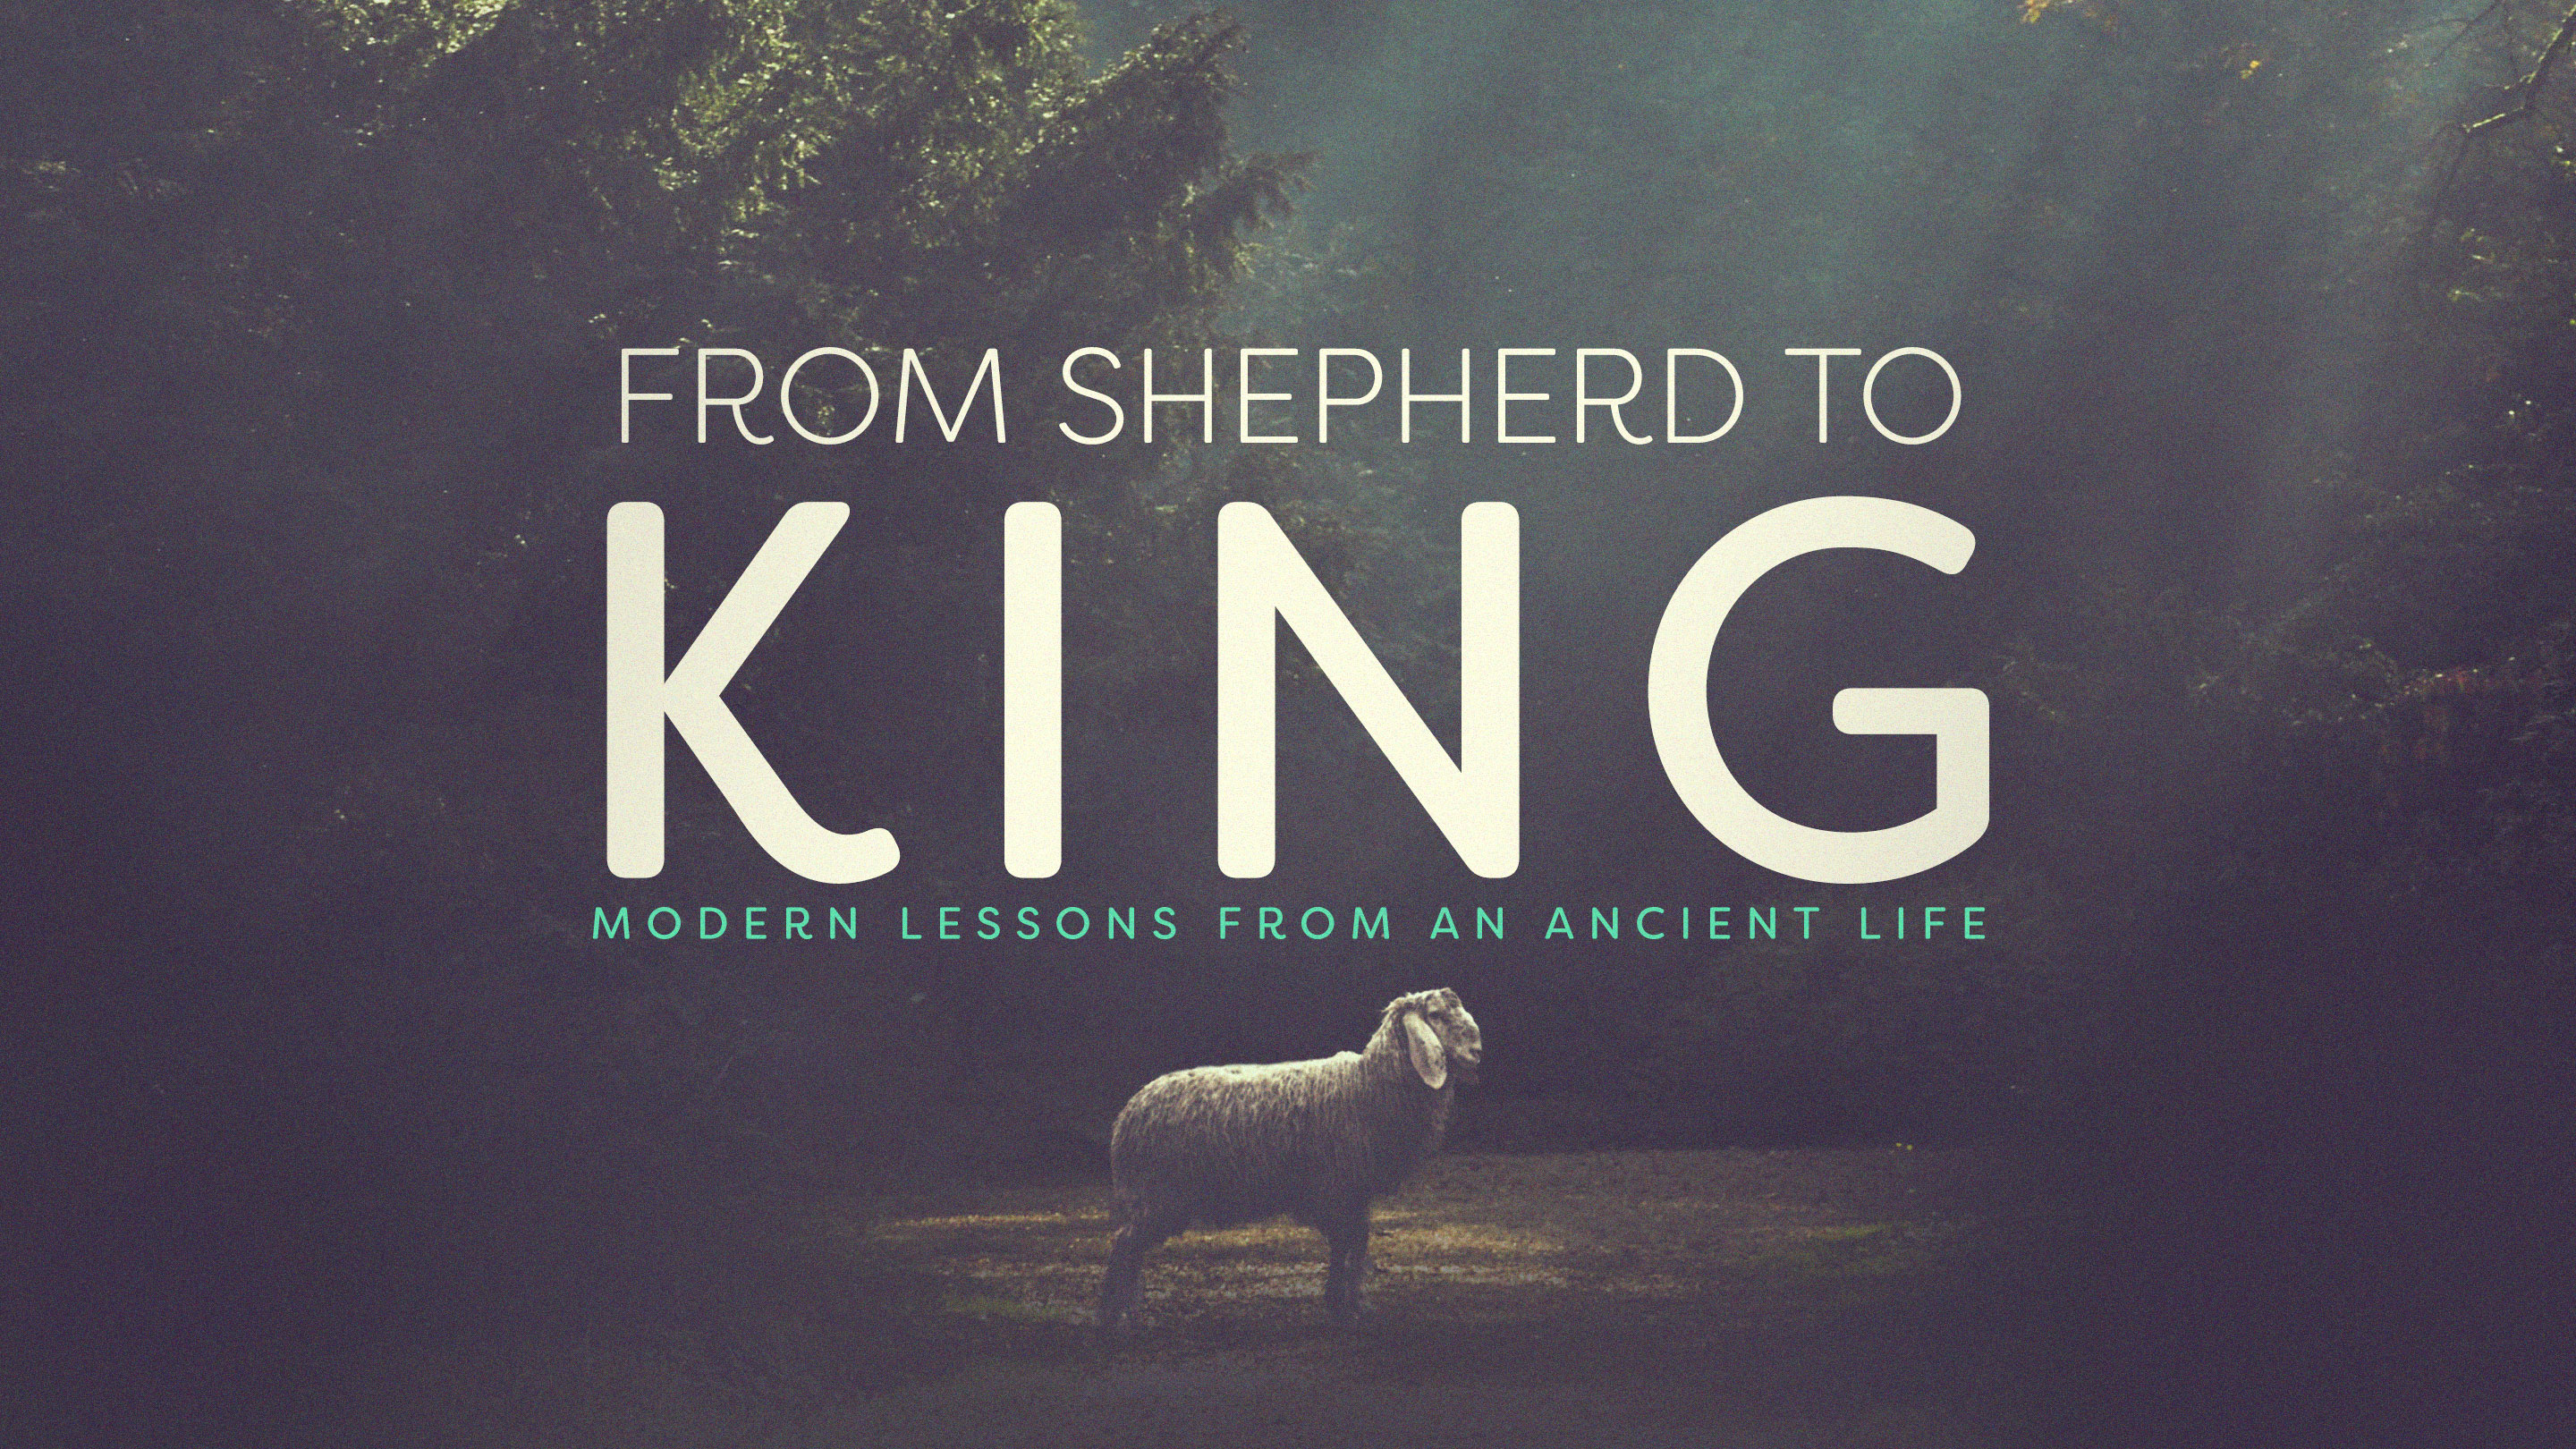 Shepherd to King